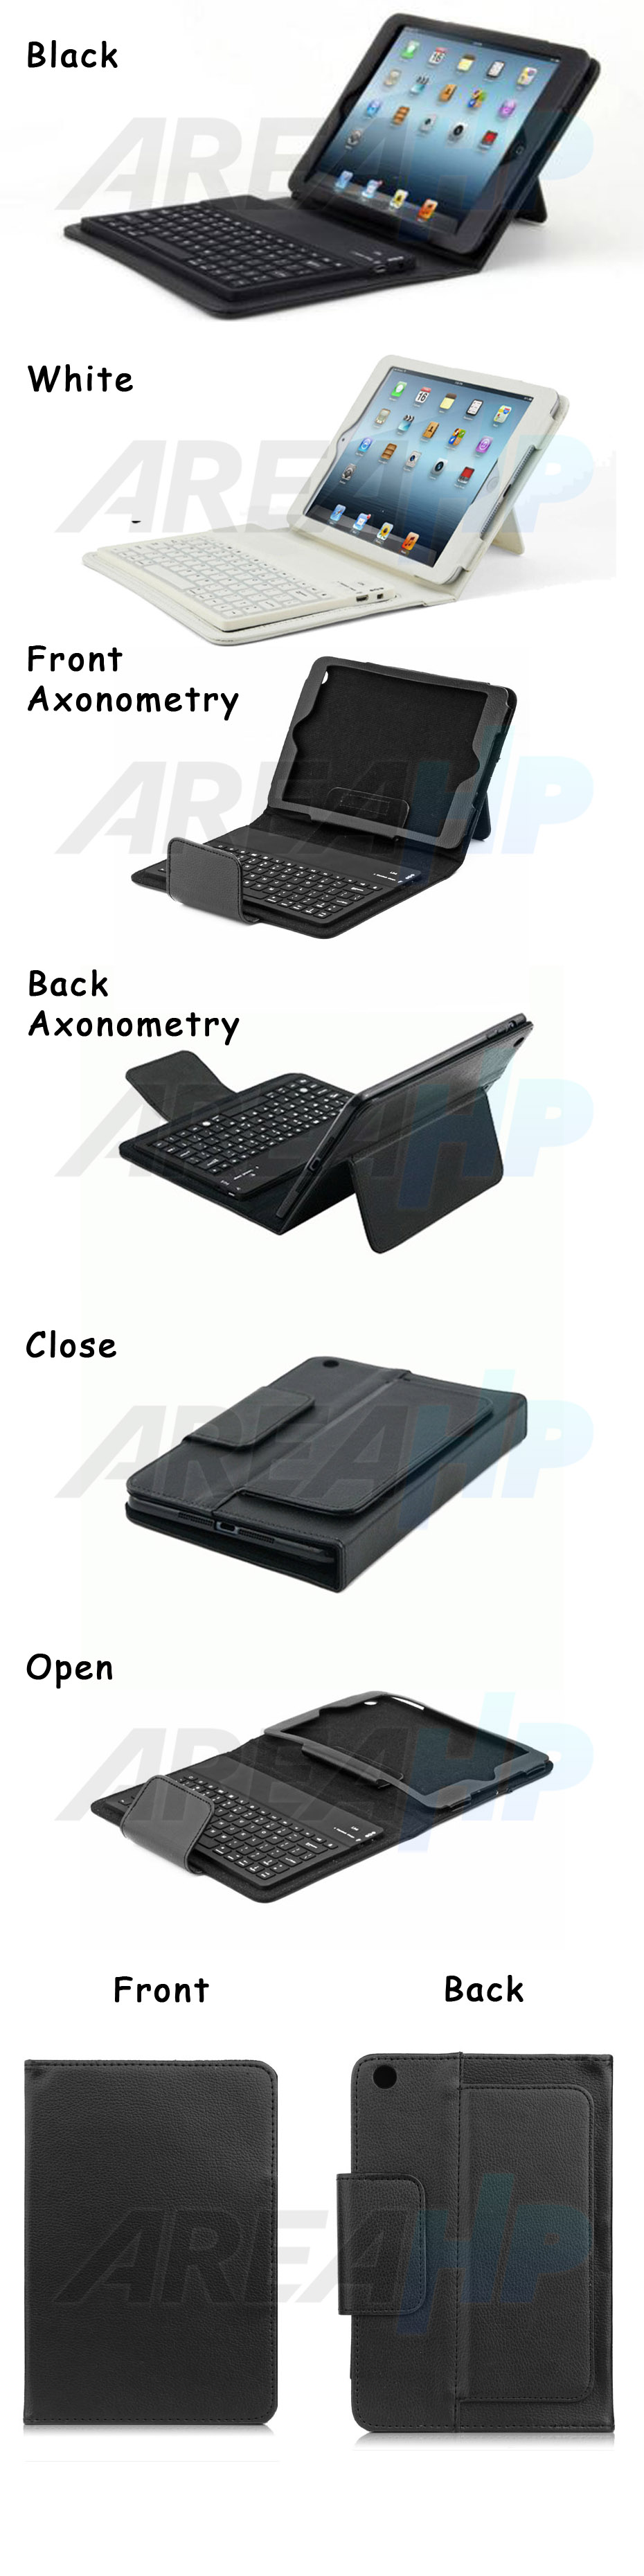 Keyboard Case for iPad Mini 1, 2, 3 Overview